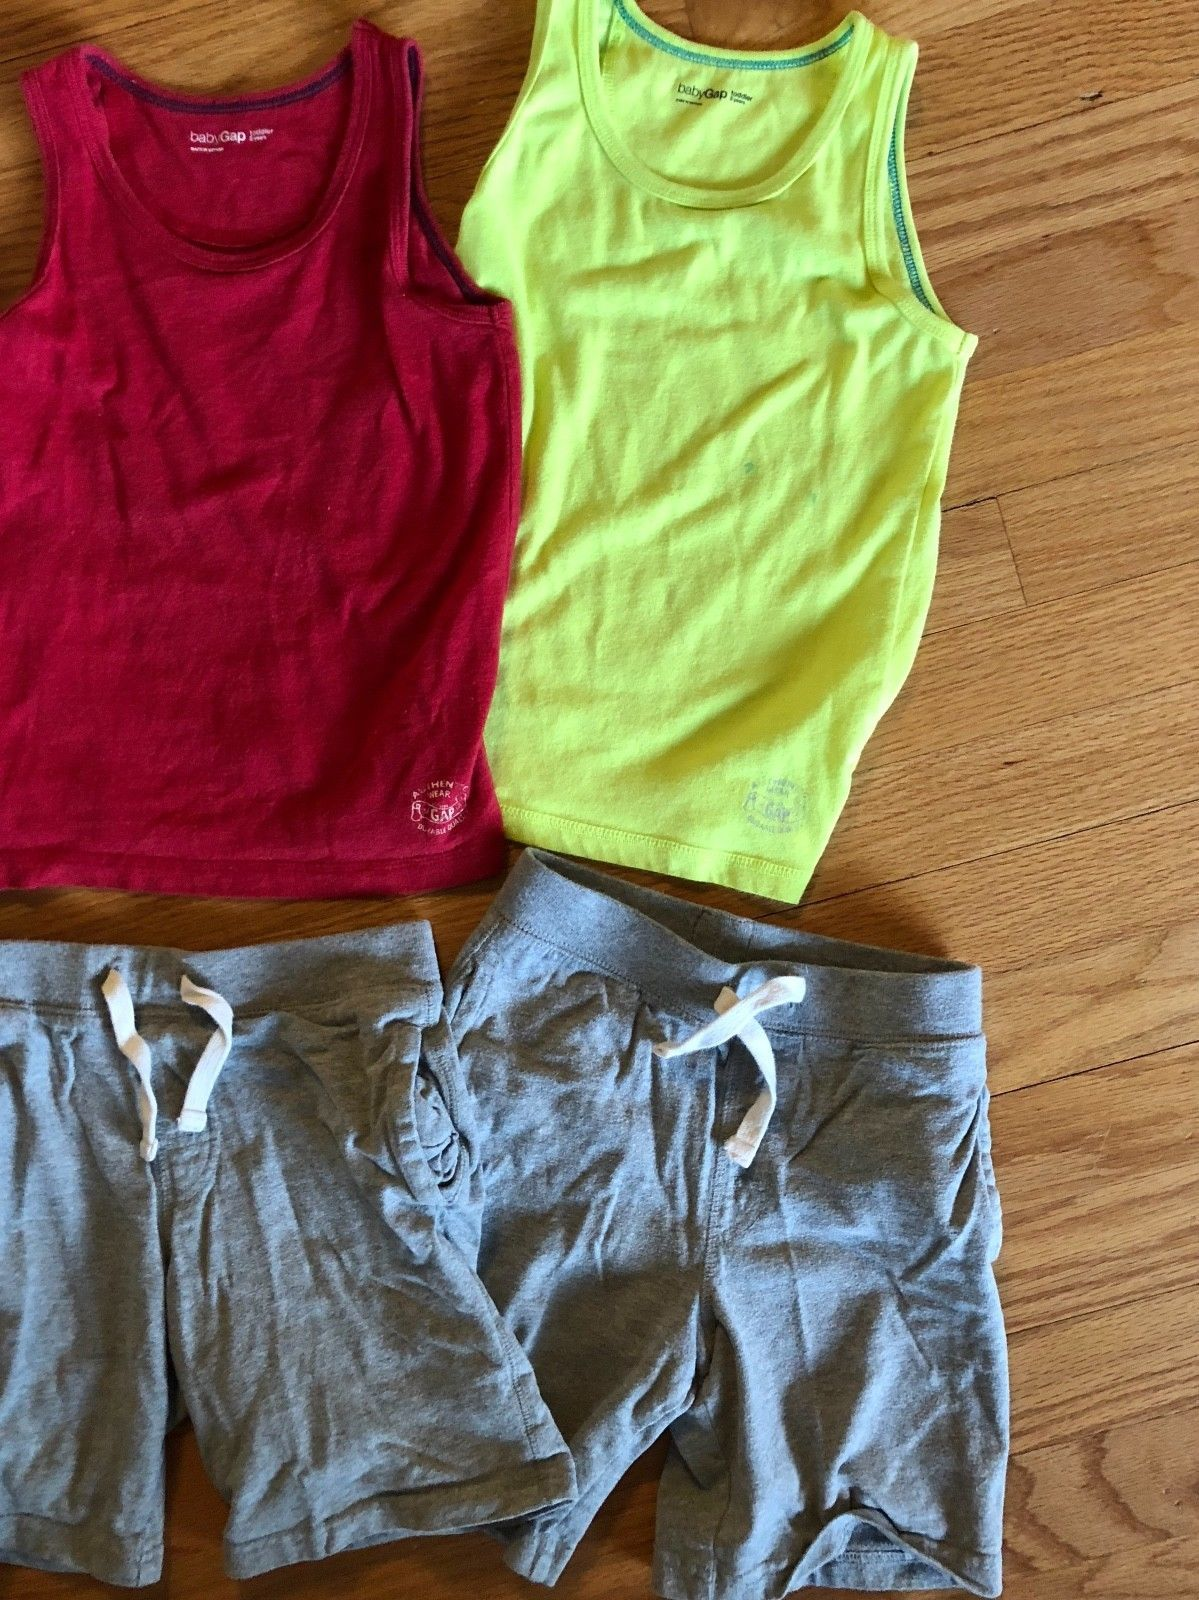 BABY GAP Tank Top + Knit Pull On Shorts Lot of 6 - Summer Outfits Blue Gray Red image 3